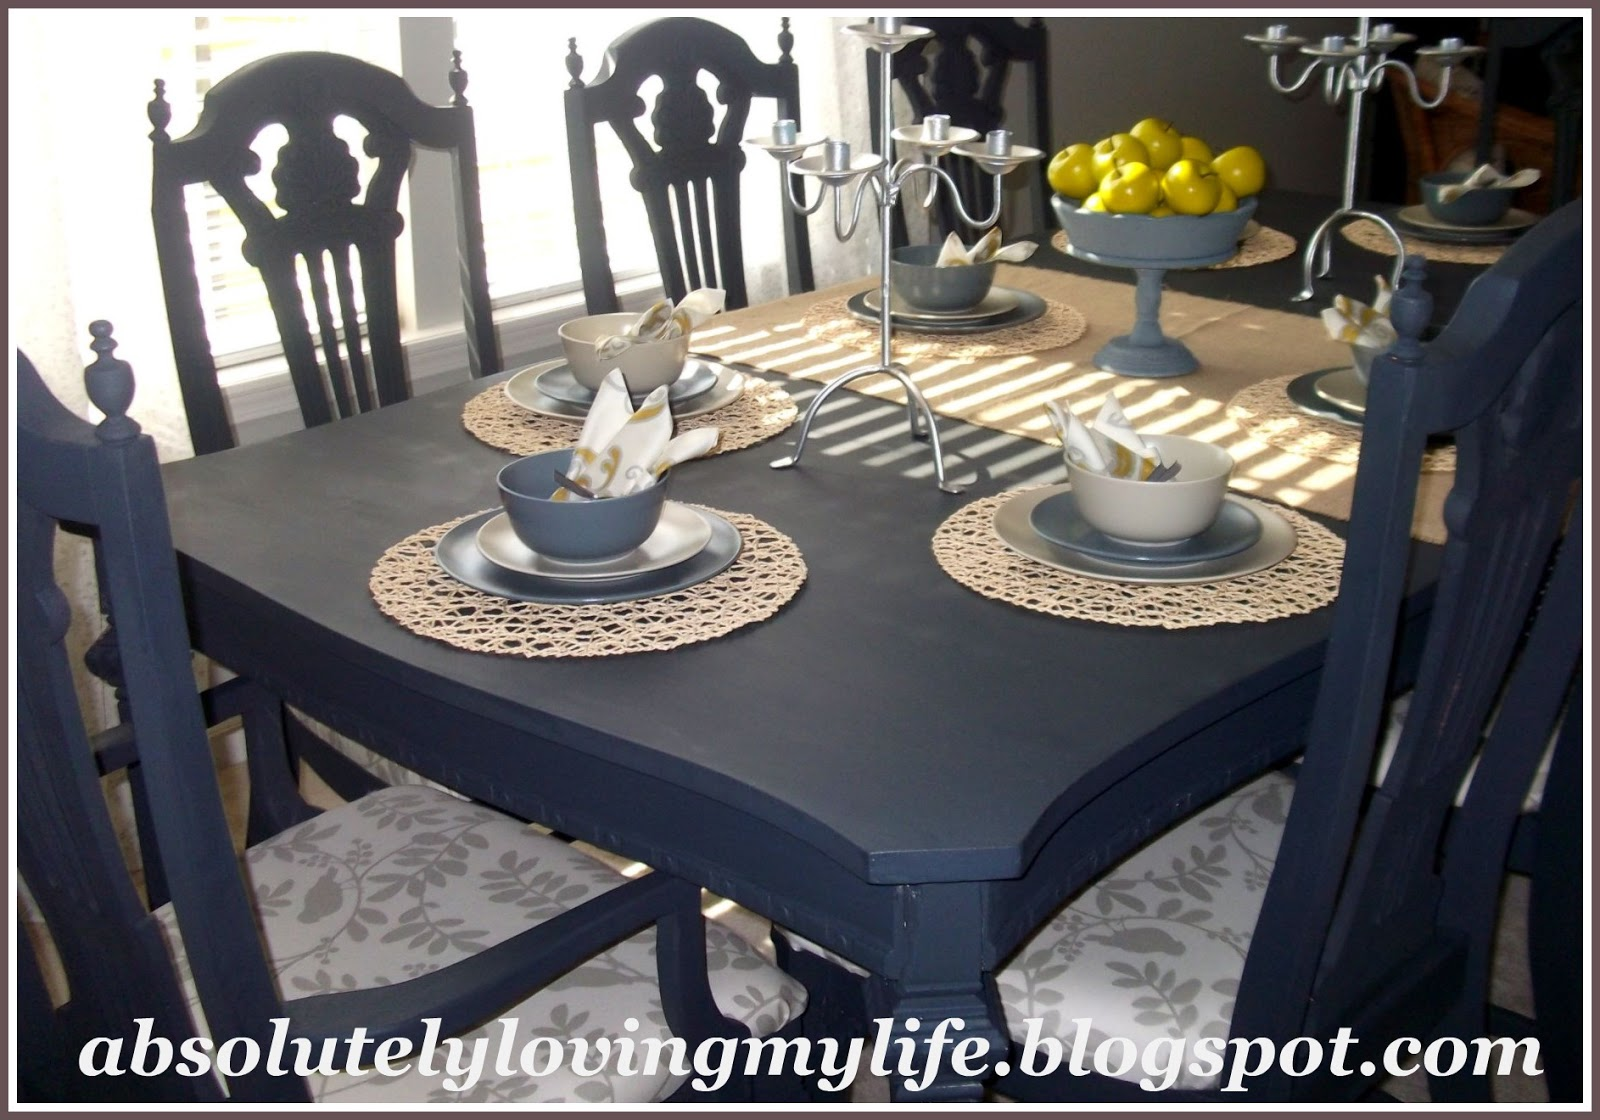 Dining Table Craigslist Loving Life Refinished Craigslist Kitchen Table No Streaks And